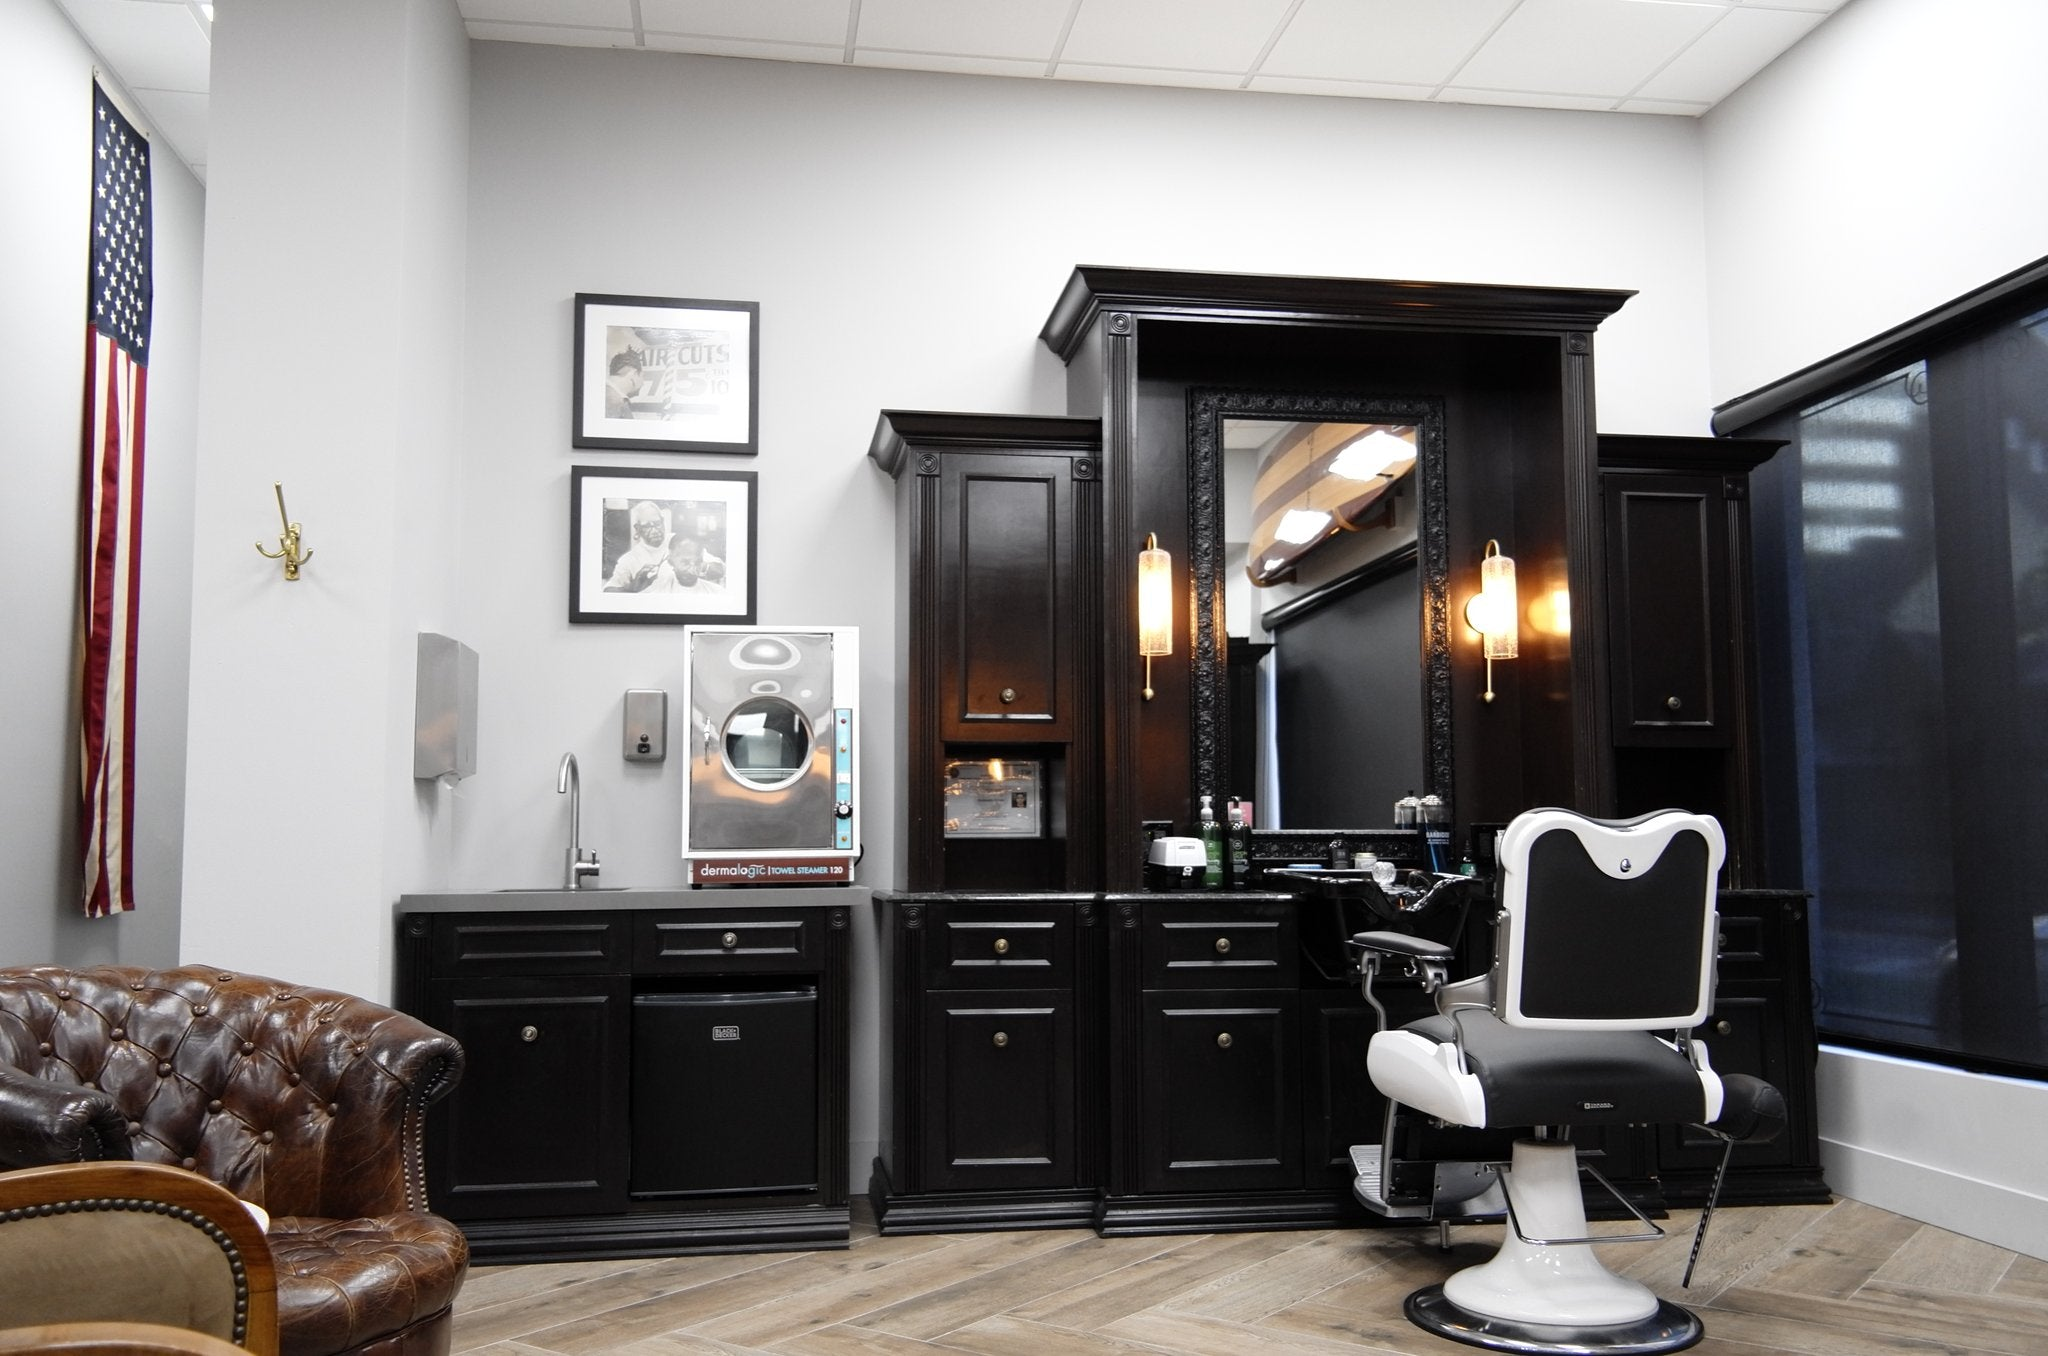 Churchills Barbershop Shave